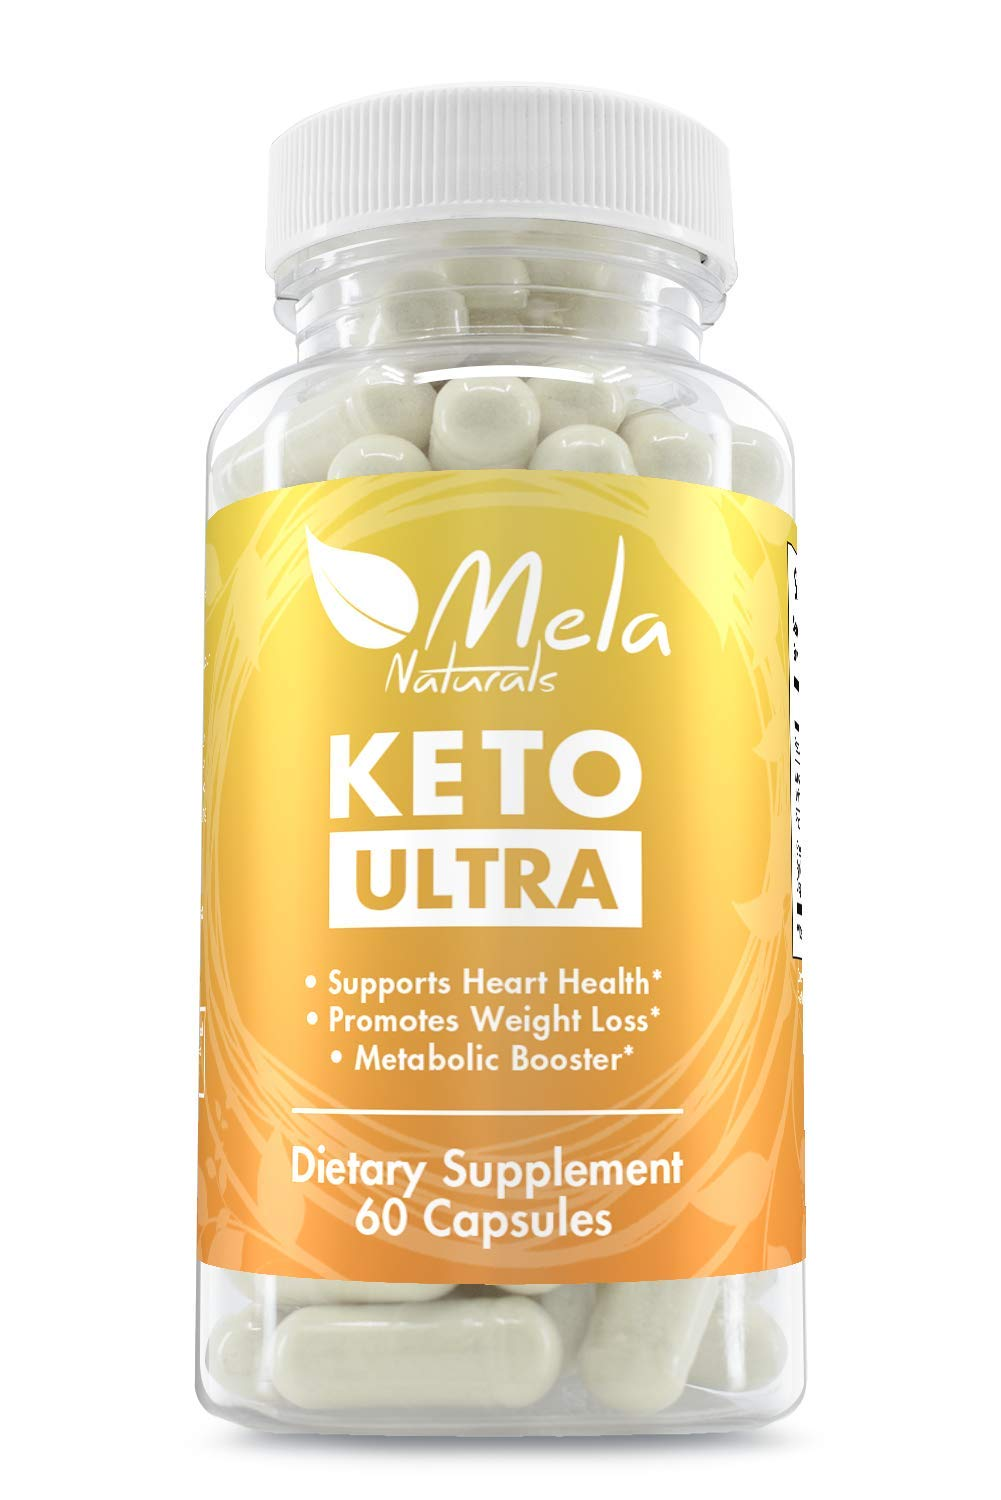 Premium ketogenic Weight Loss Herbal Supplement. with 7 Fat Burning Ingredients. Promotes Weight Loss and Heart Health. Helps speeds up Metabolism to Burn Fat While in ketosis by Mela Natutals (Image #1)